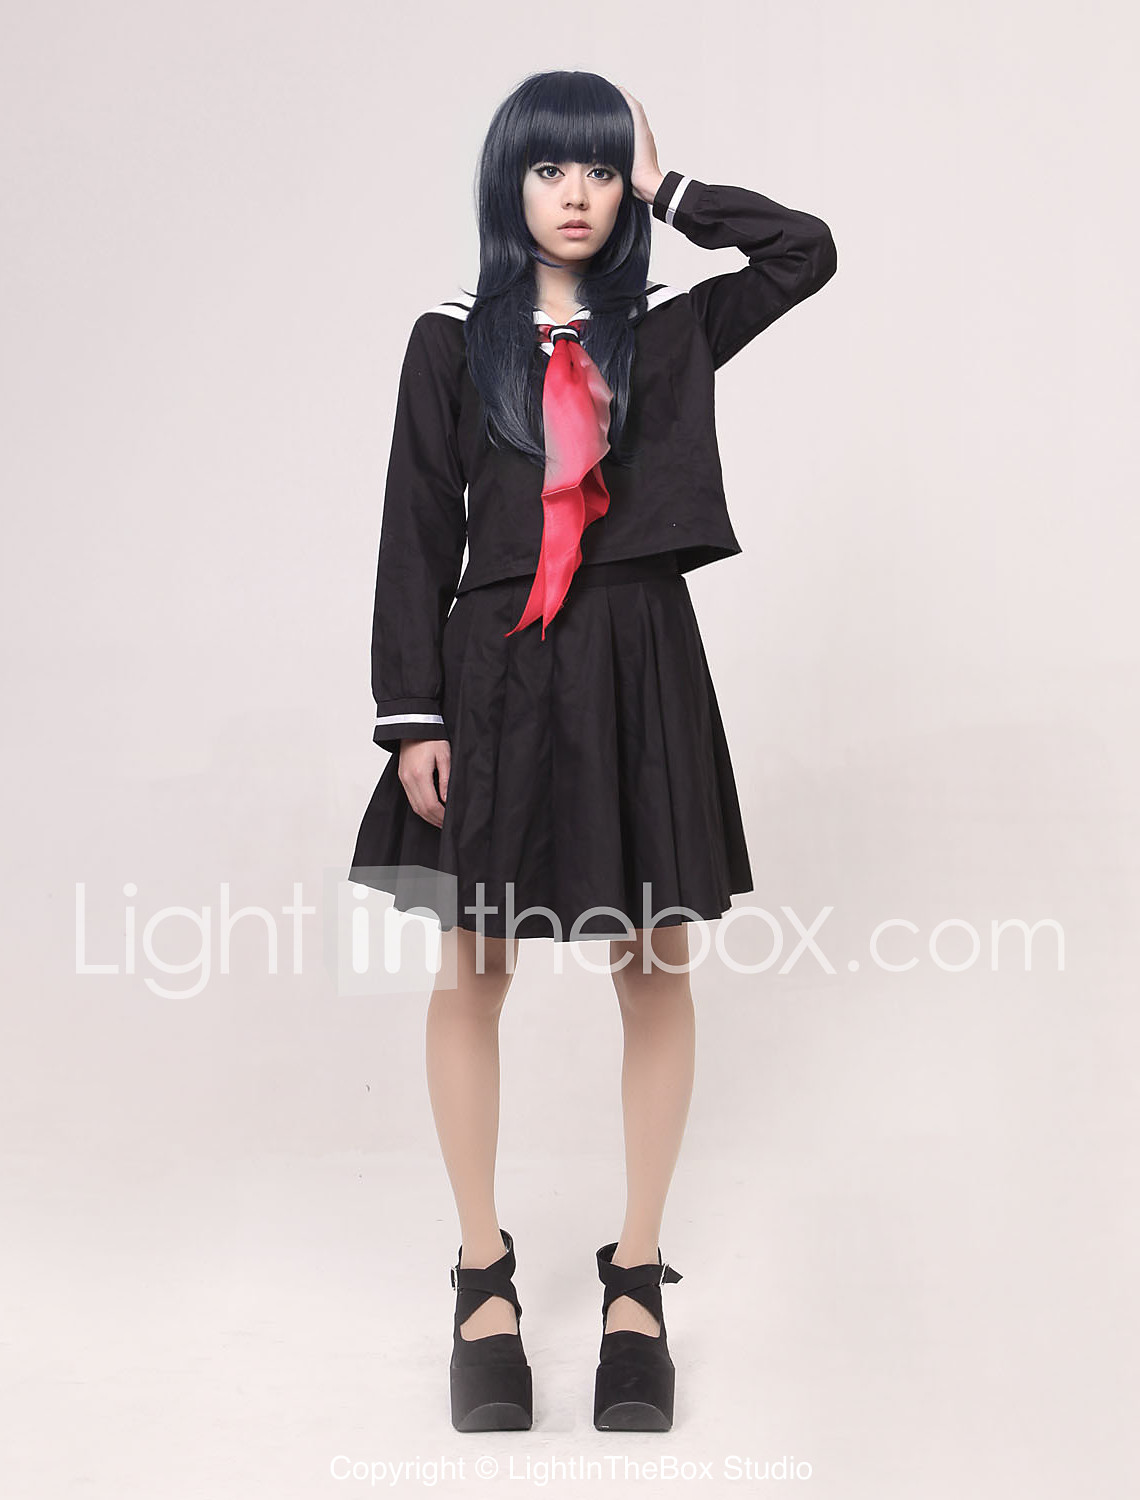 Japanese School Uniforms Cosplay Lightintheboxcom